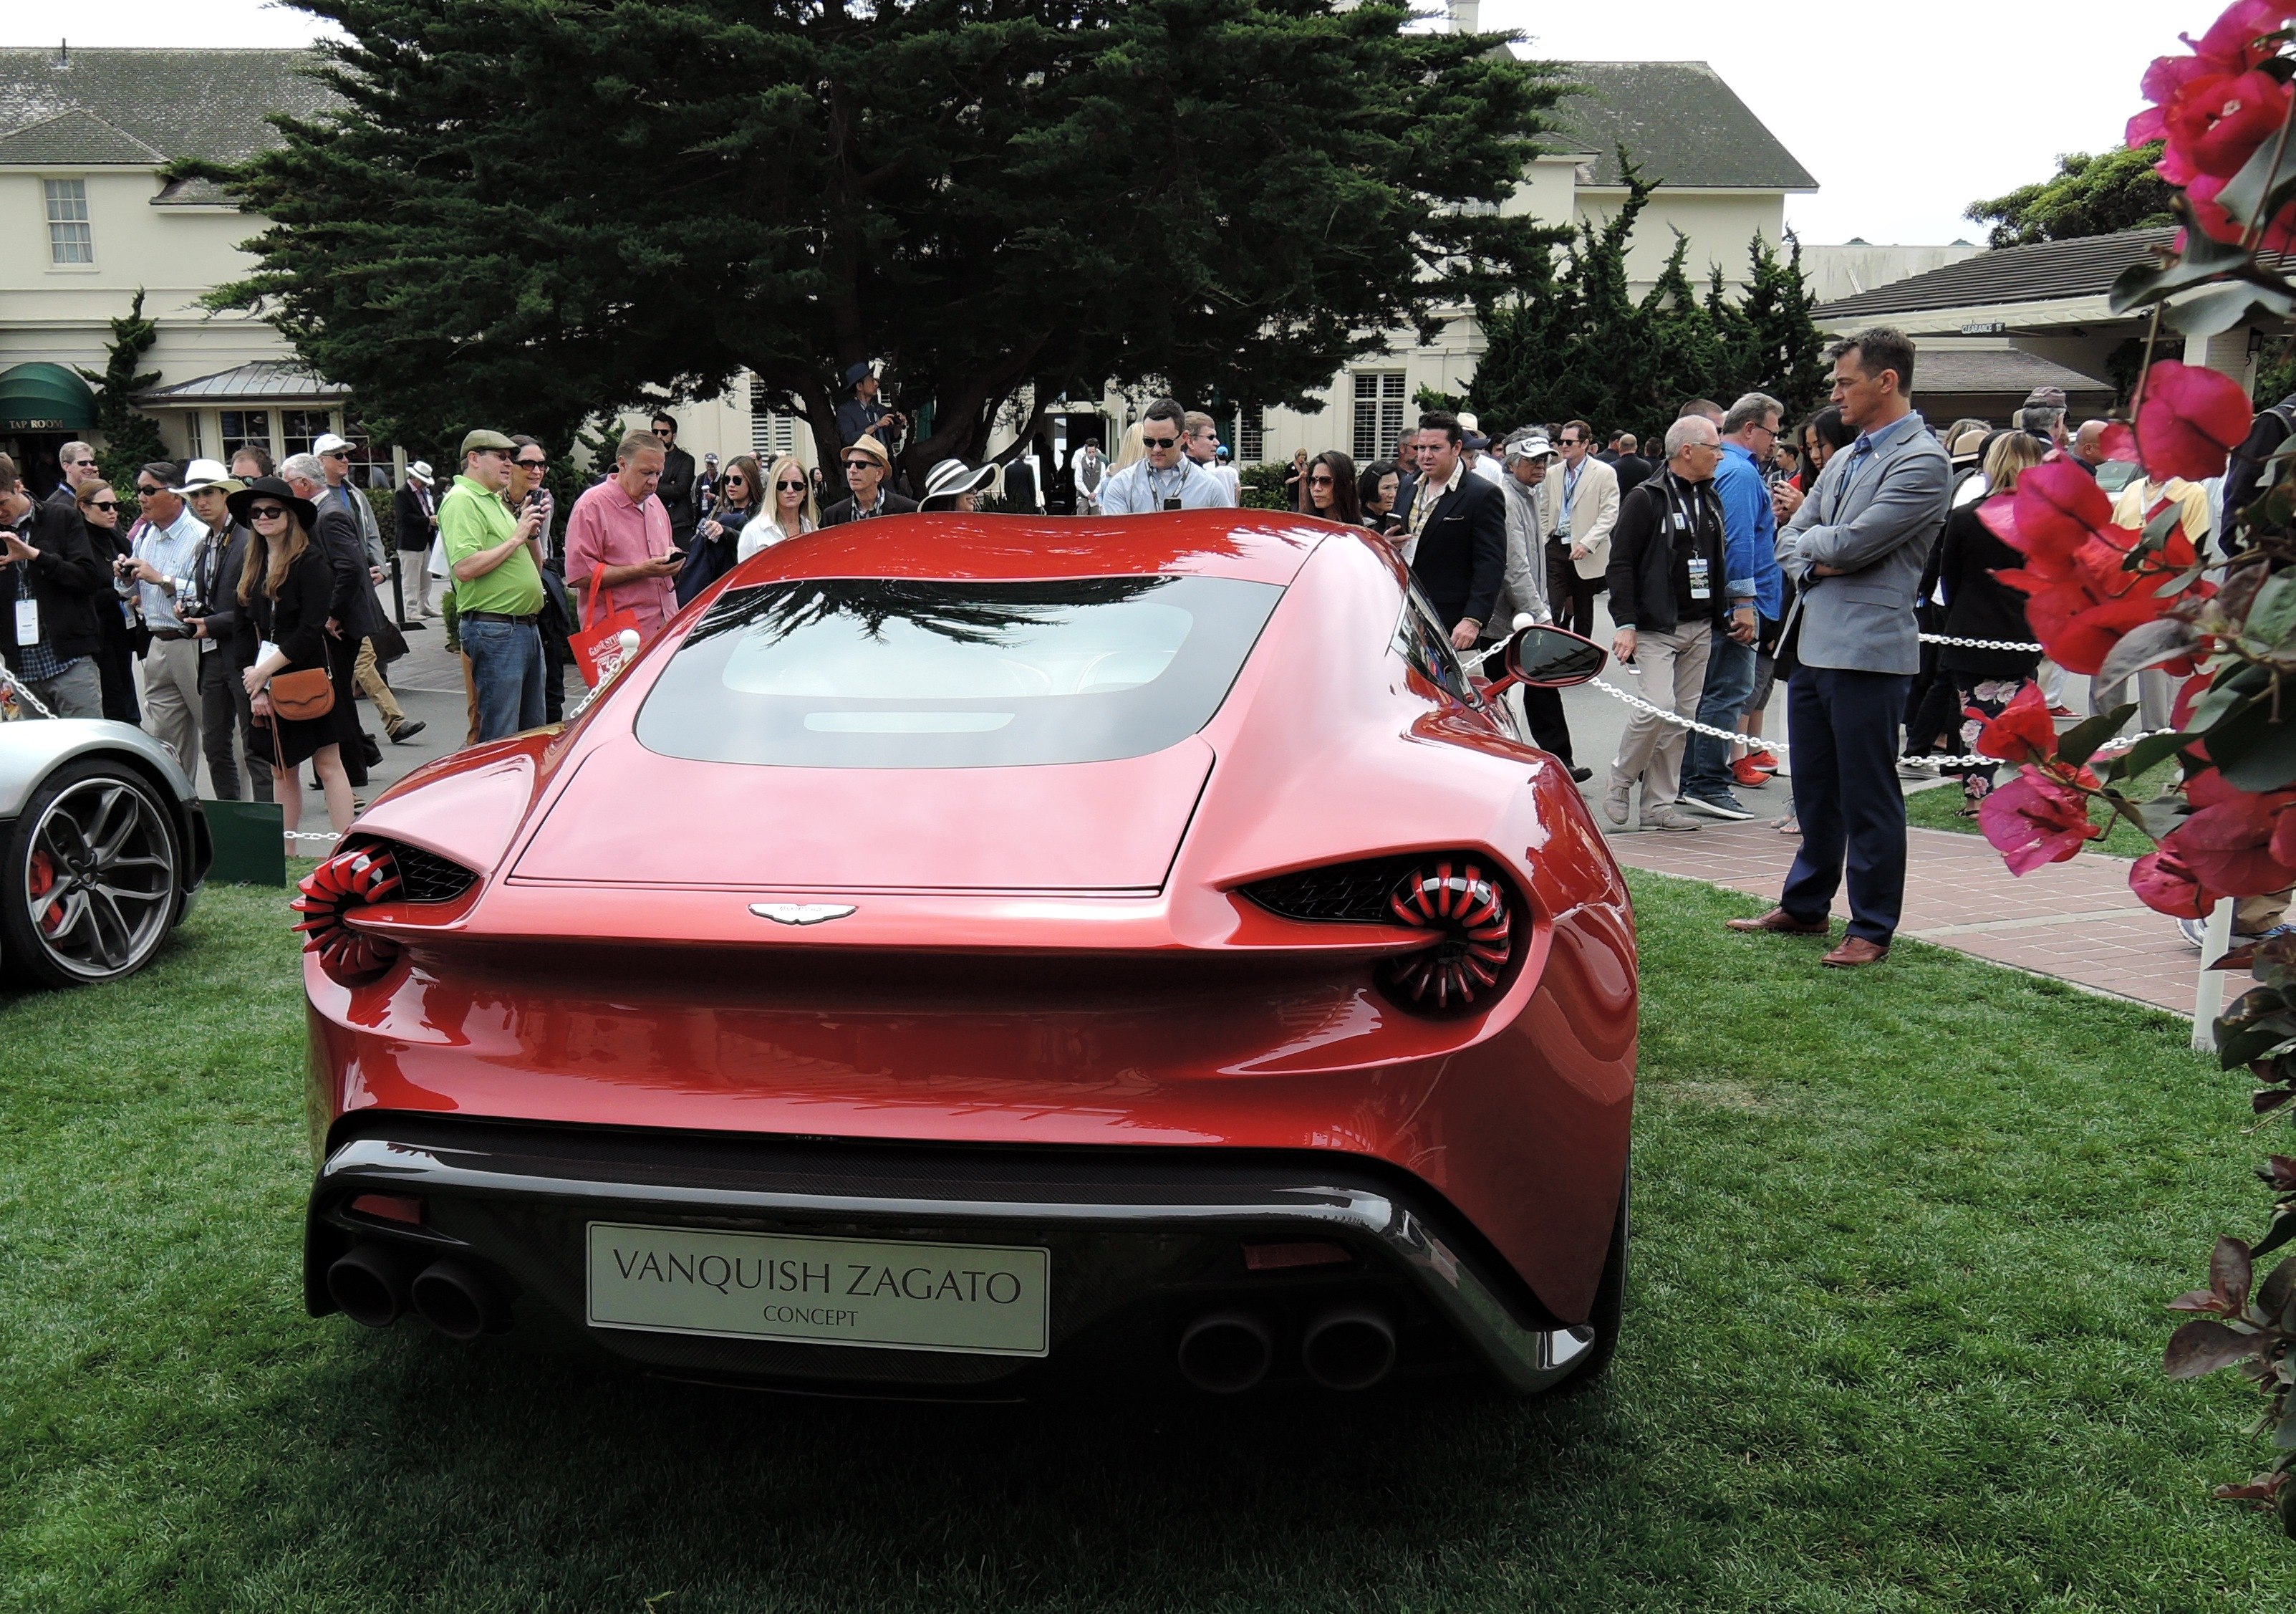 sunburst orange Aston Martin Vanquish Zagato Concept Car - Pebble Beach Concours d'Elegance 2016